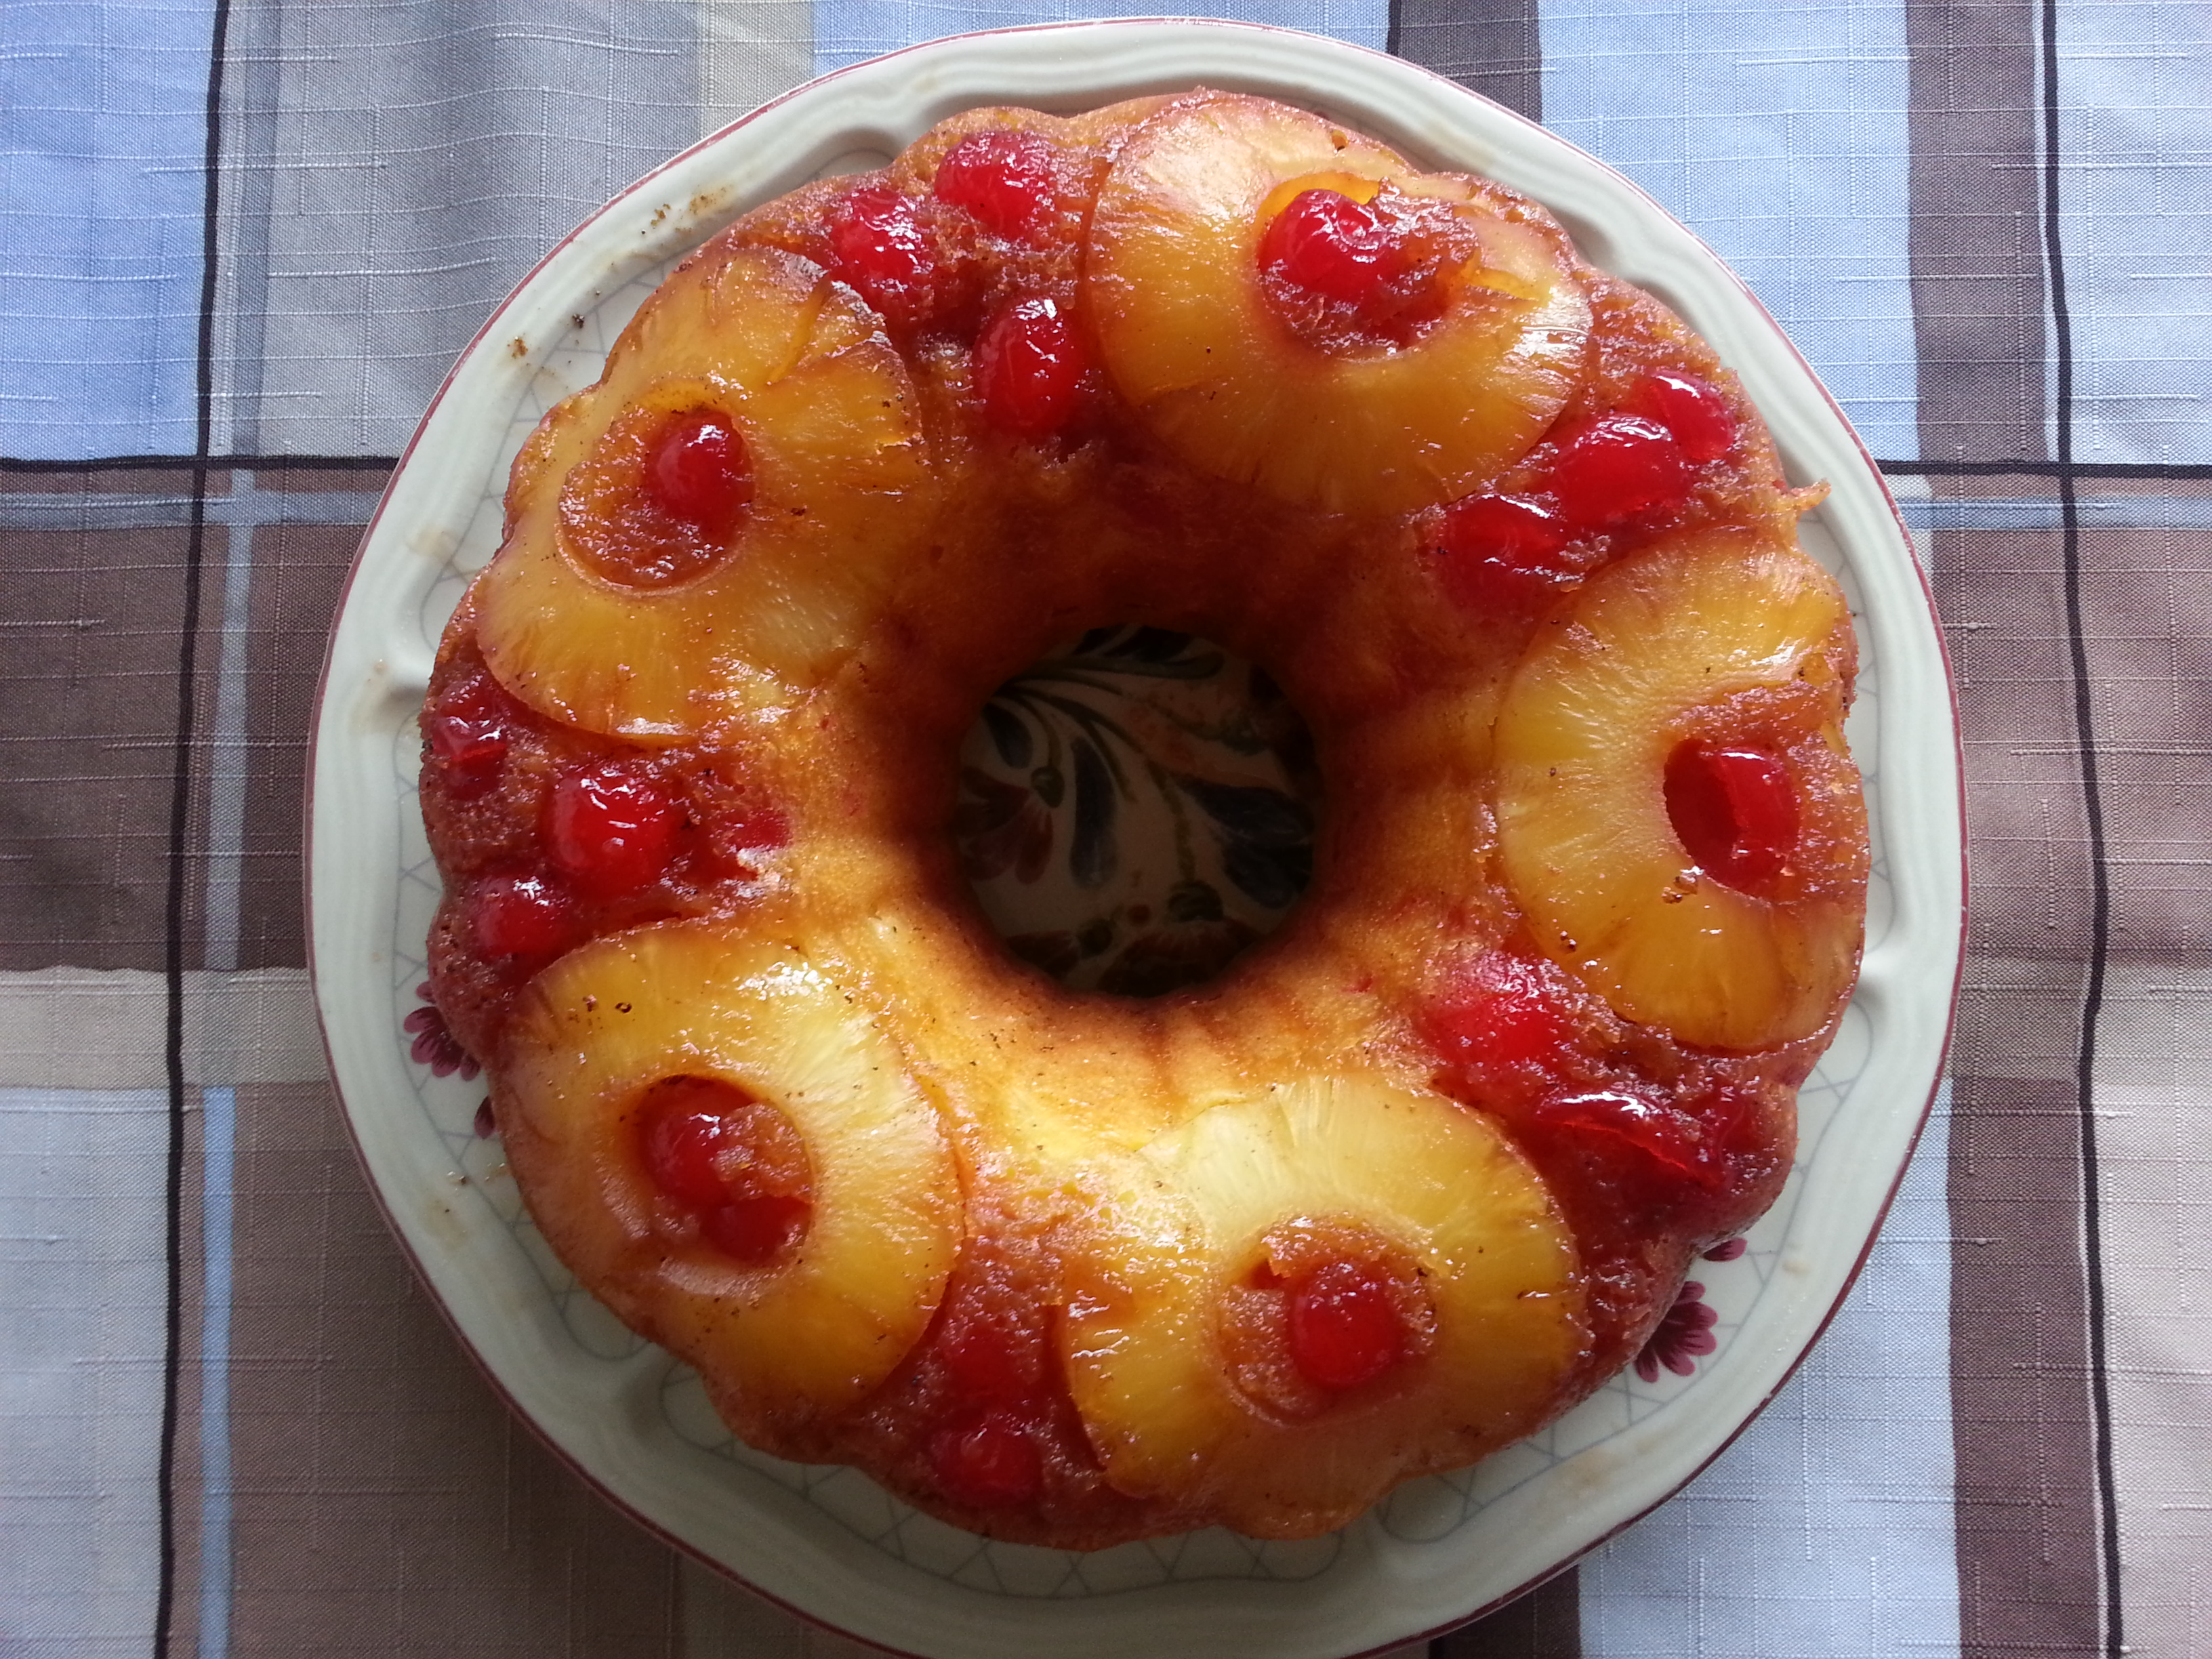 Pineapple Upside Down Bundt Cake Recipe